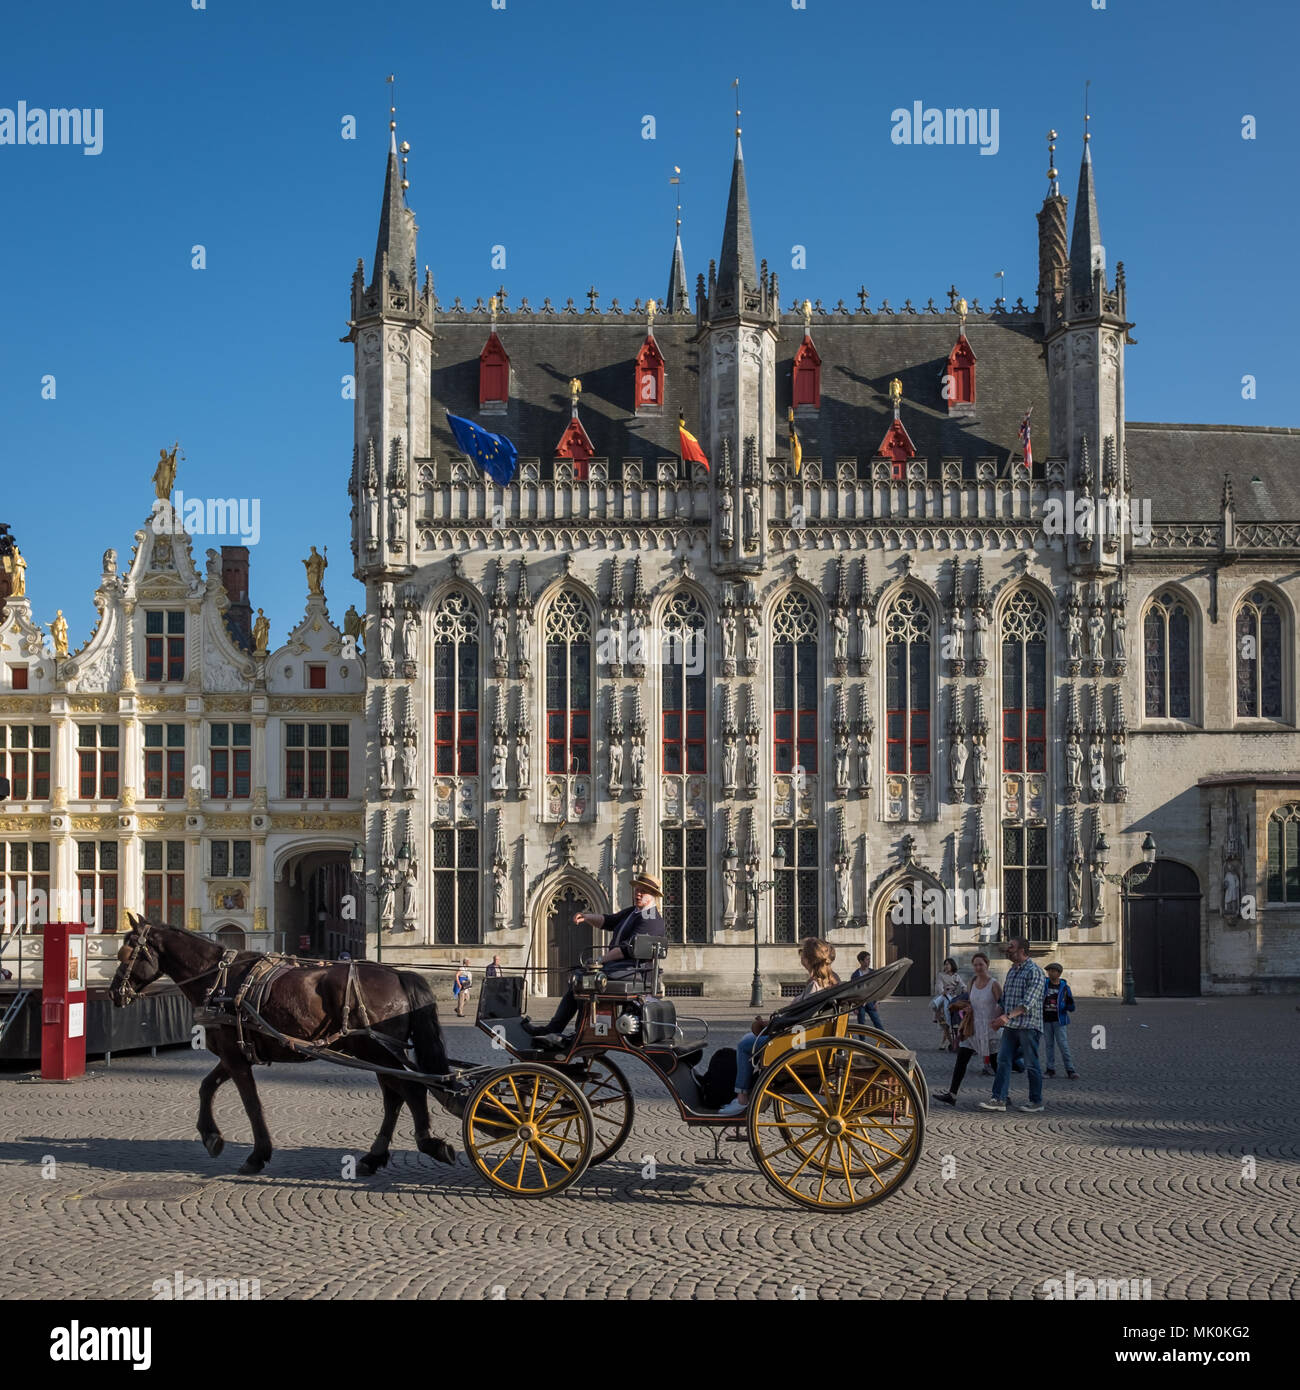 Tour guide and tourists on cart and horse on 'Burg' square in Brugge, Belgium. - Stock Image